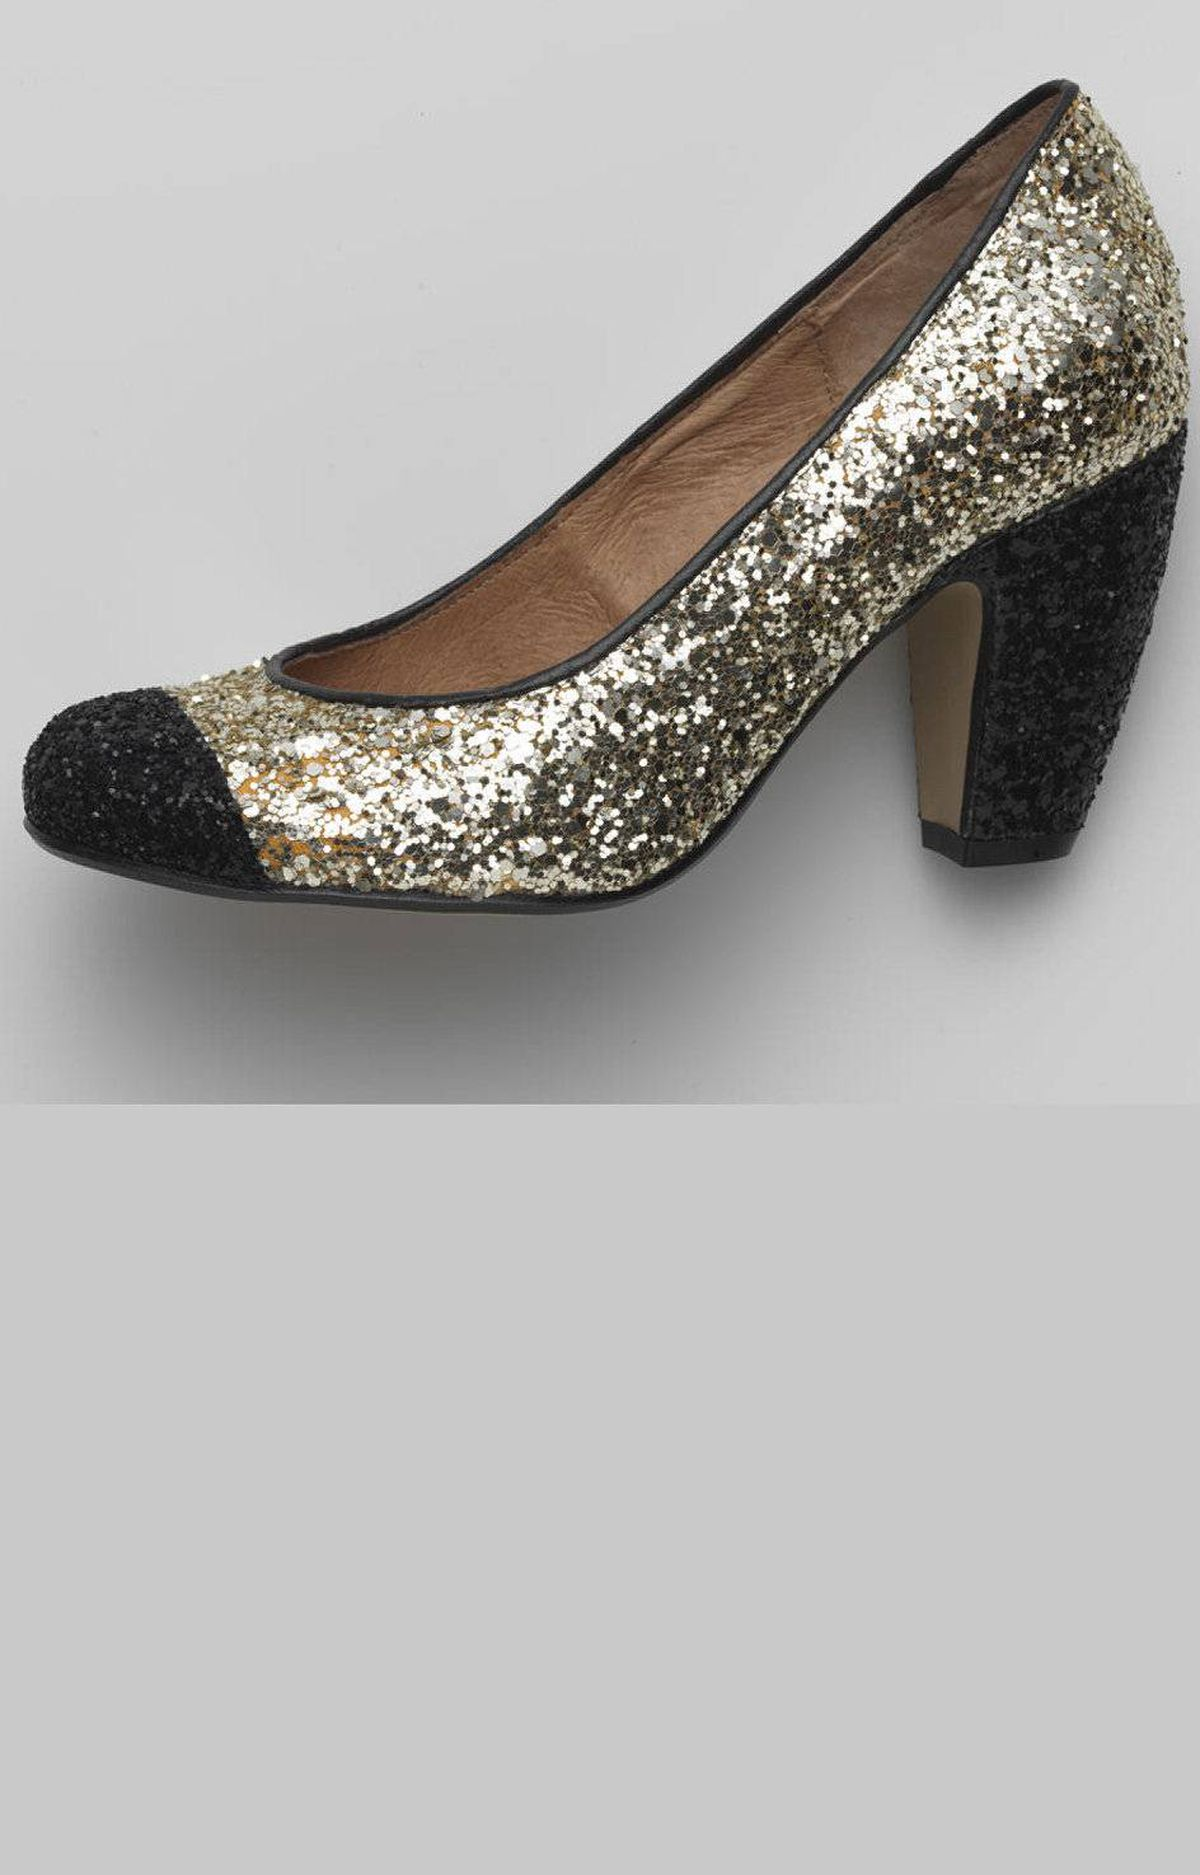 Gold and black glitter heels by Topshop, $100 at the Bay (www.thebay.com)